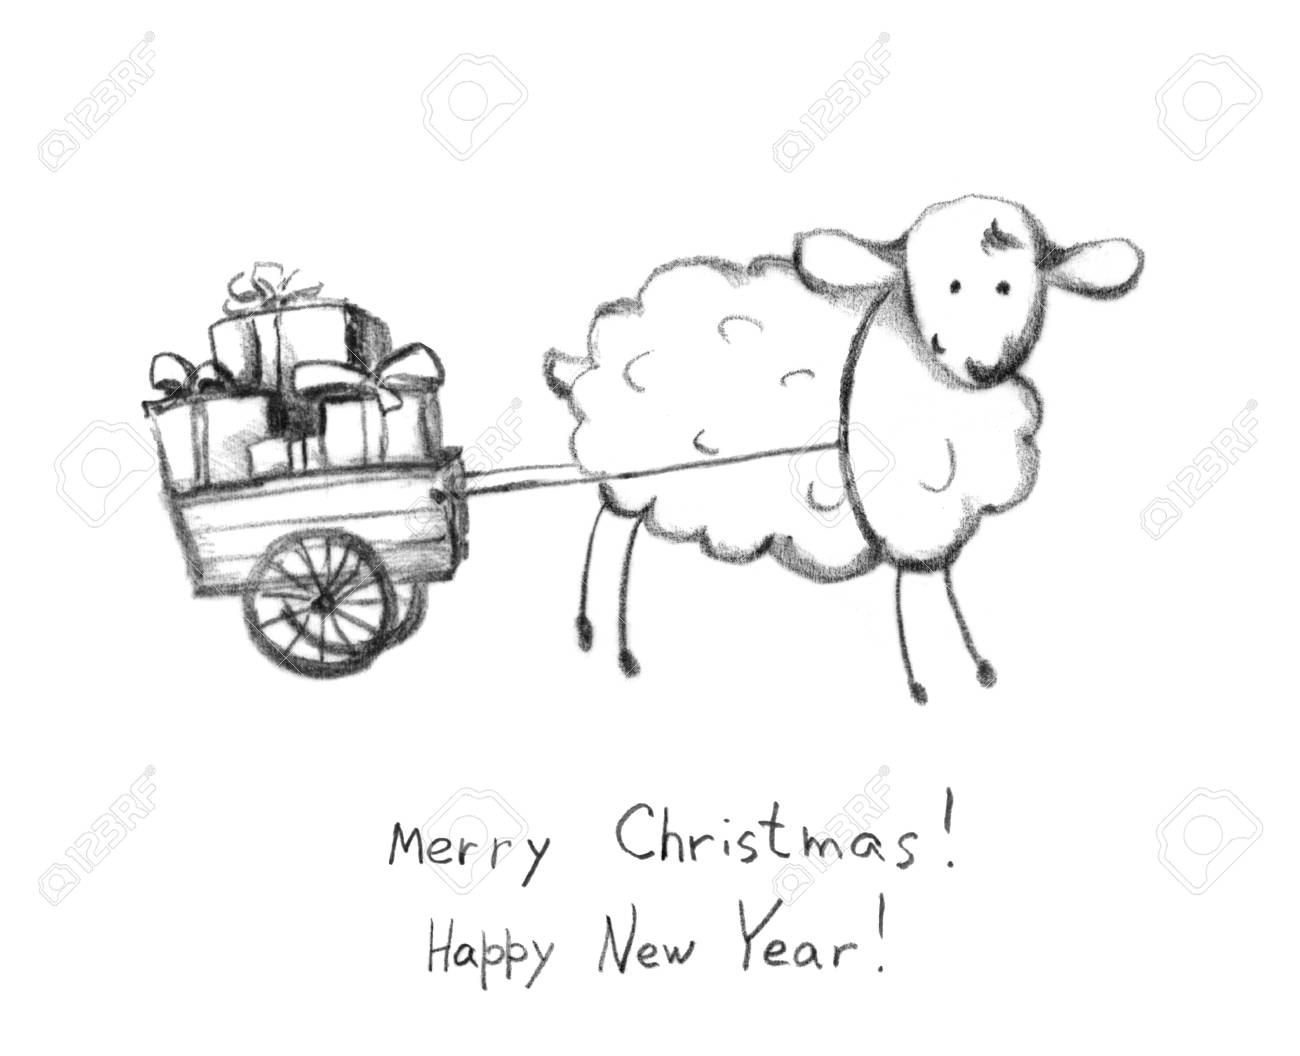 Christmas sheep and sledge with gift box pencil painted sketch xmas greeting card stock